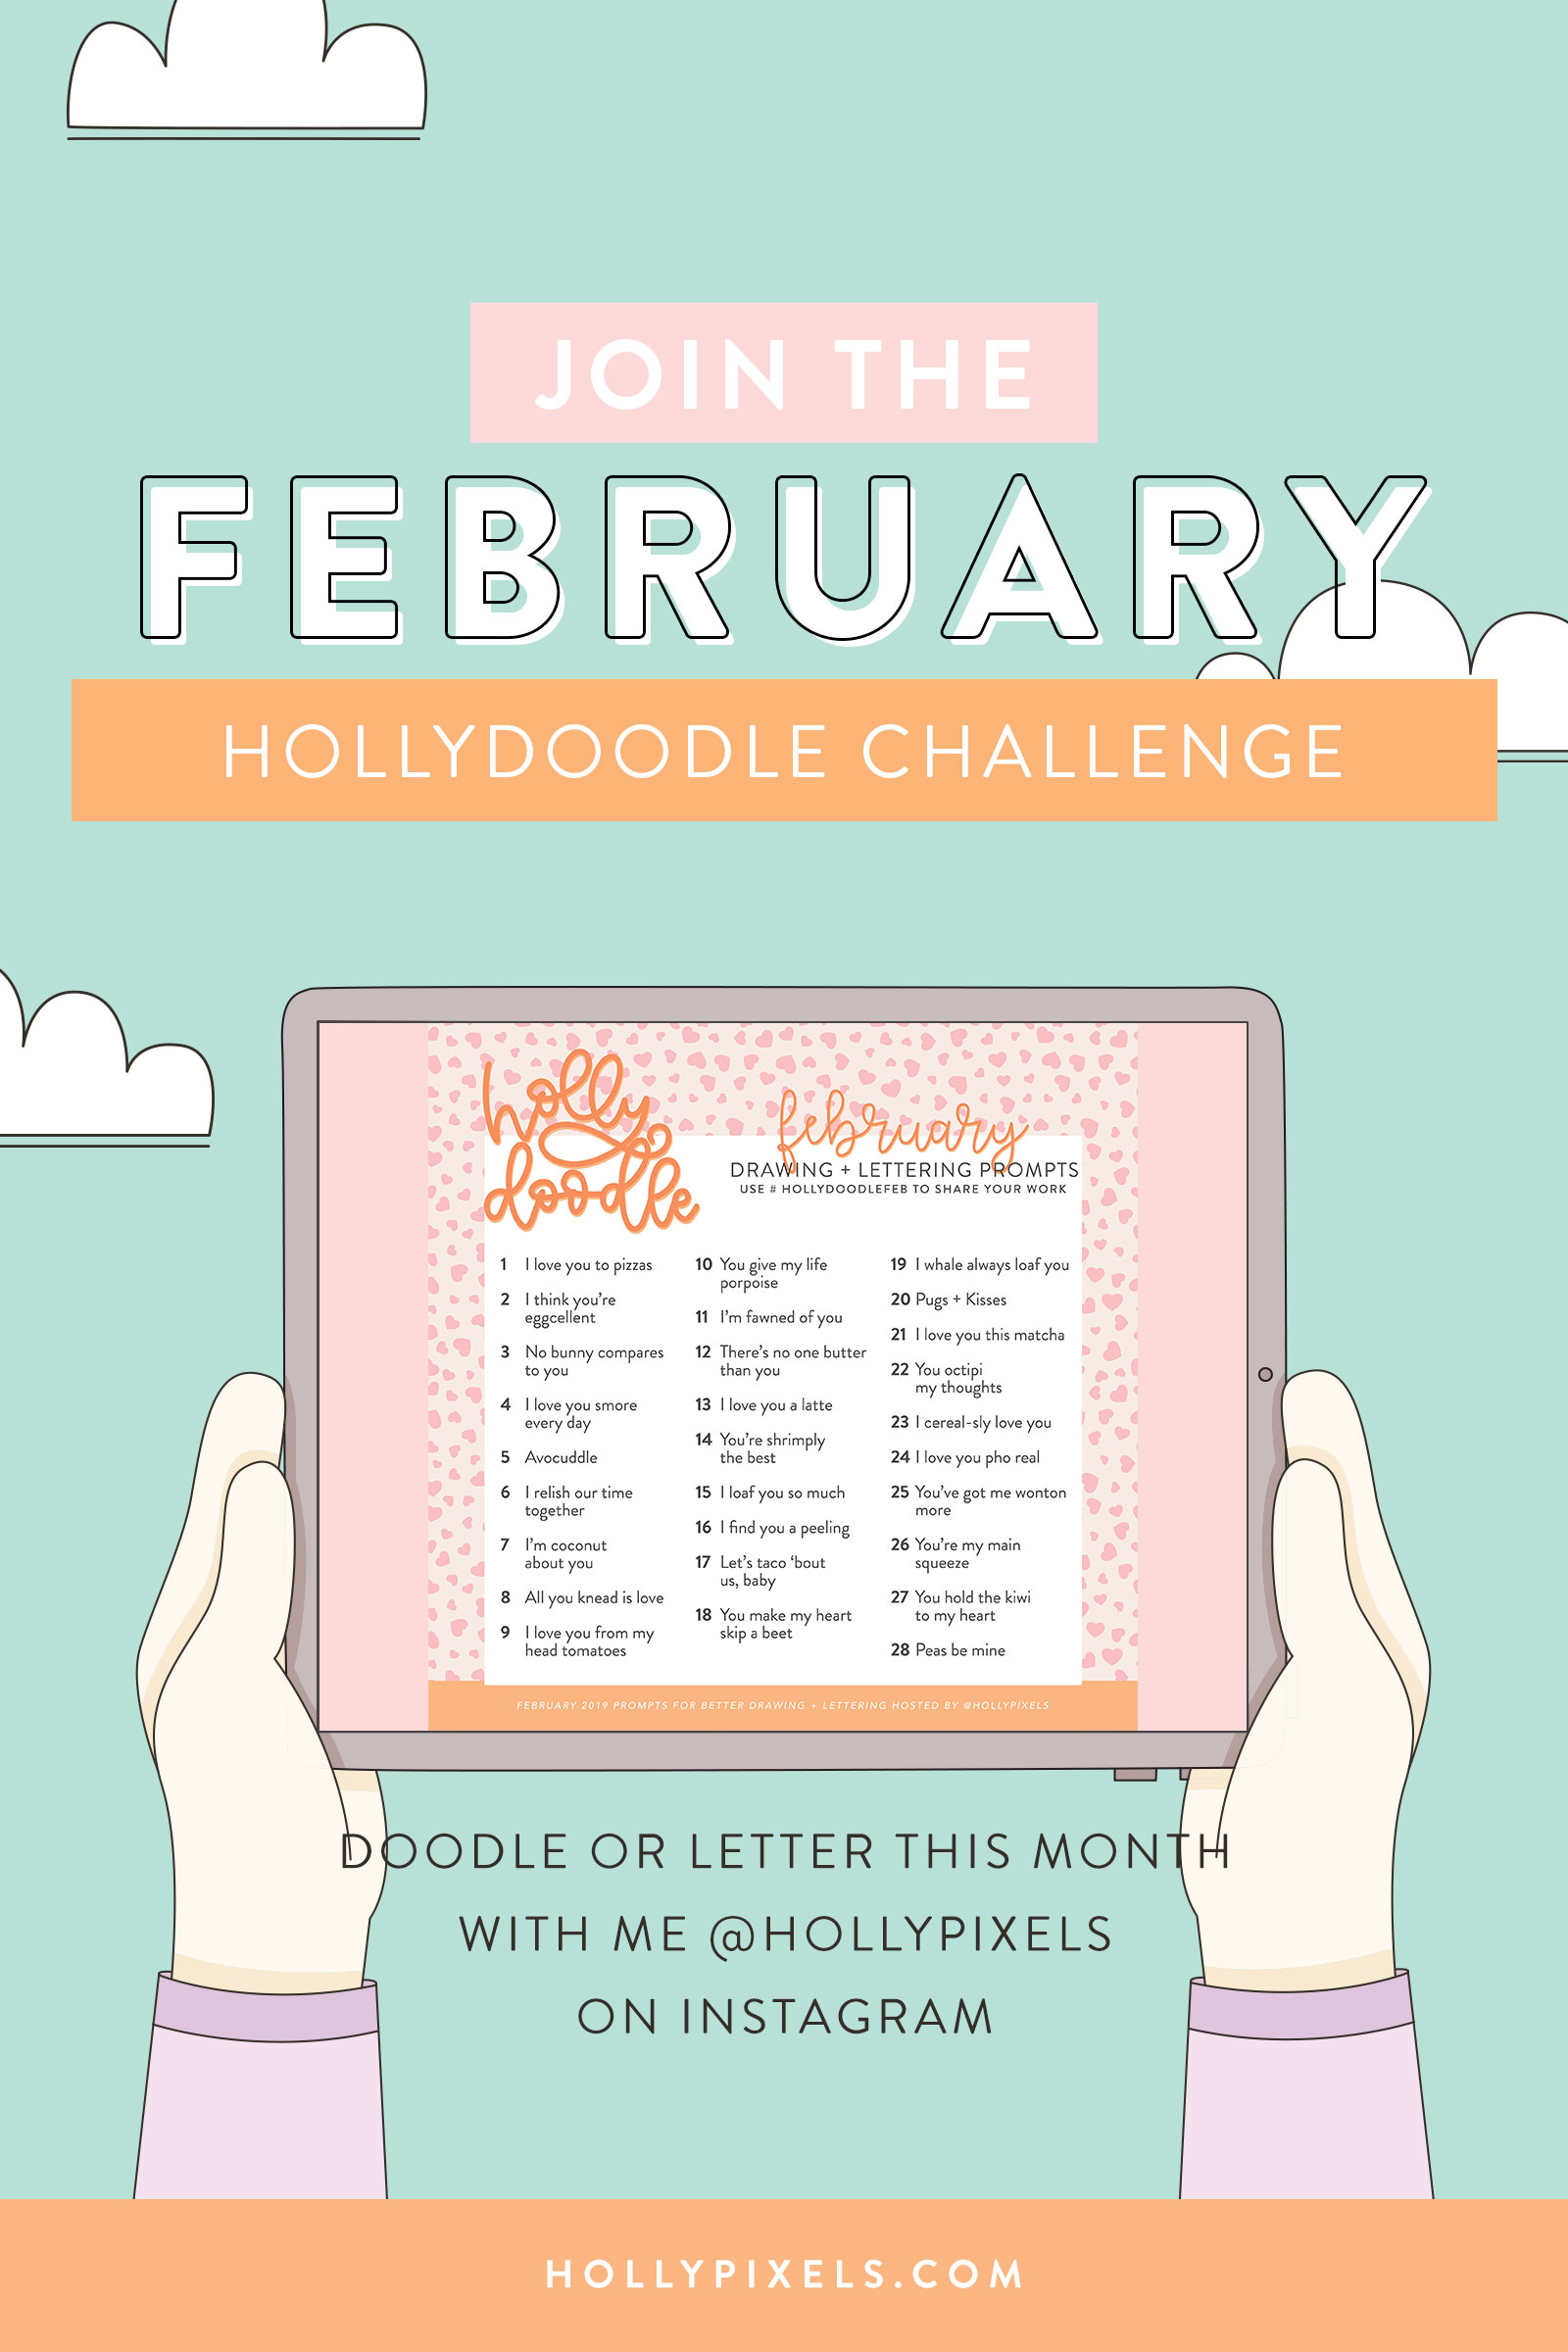 I hope I'll be seeing you participating in the Holly Doodle challenge each month. Here are the doodle prompts for February - all about the Love puns!